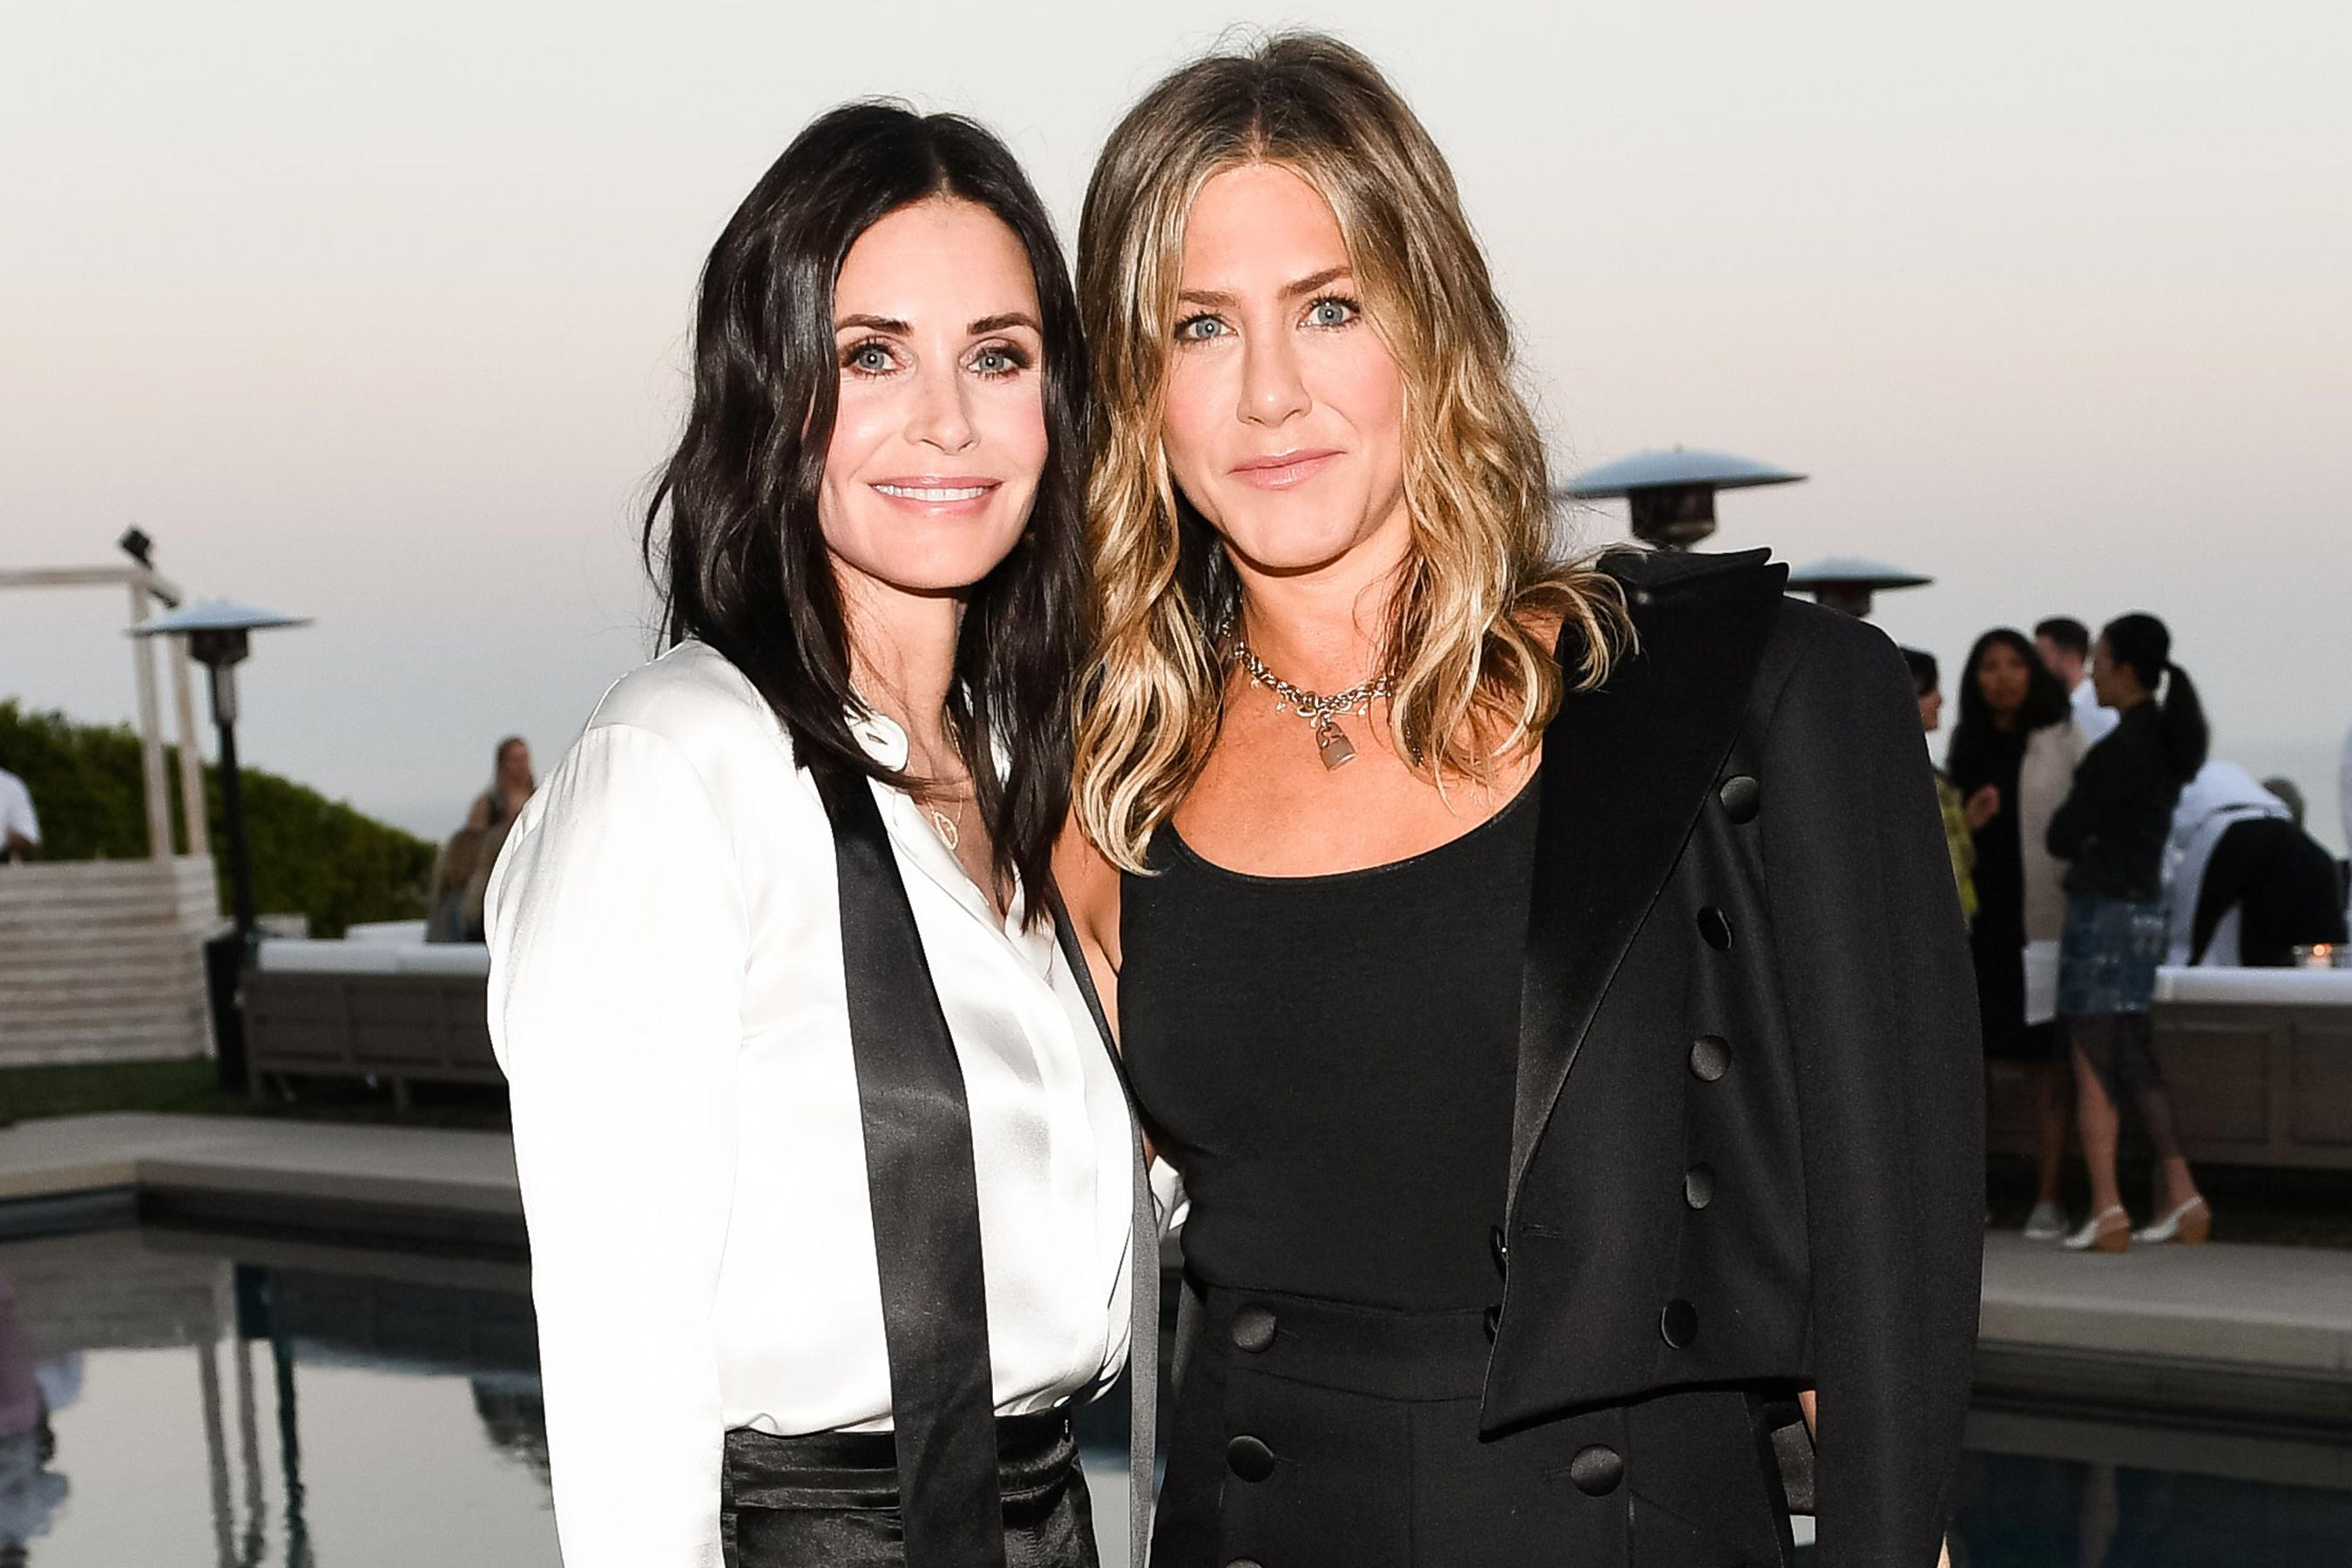 , Jennifer Aniston shares Instagram Debut and Shadowing 'GMA' on 'Jimmy Kimmel'